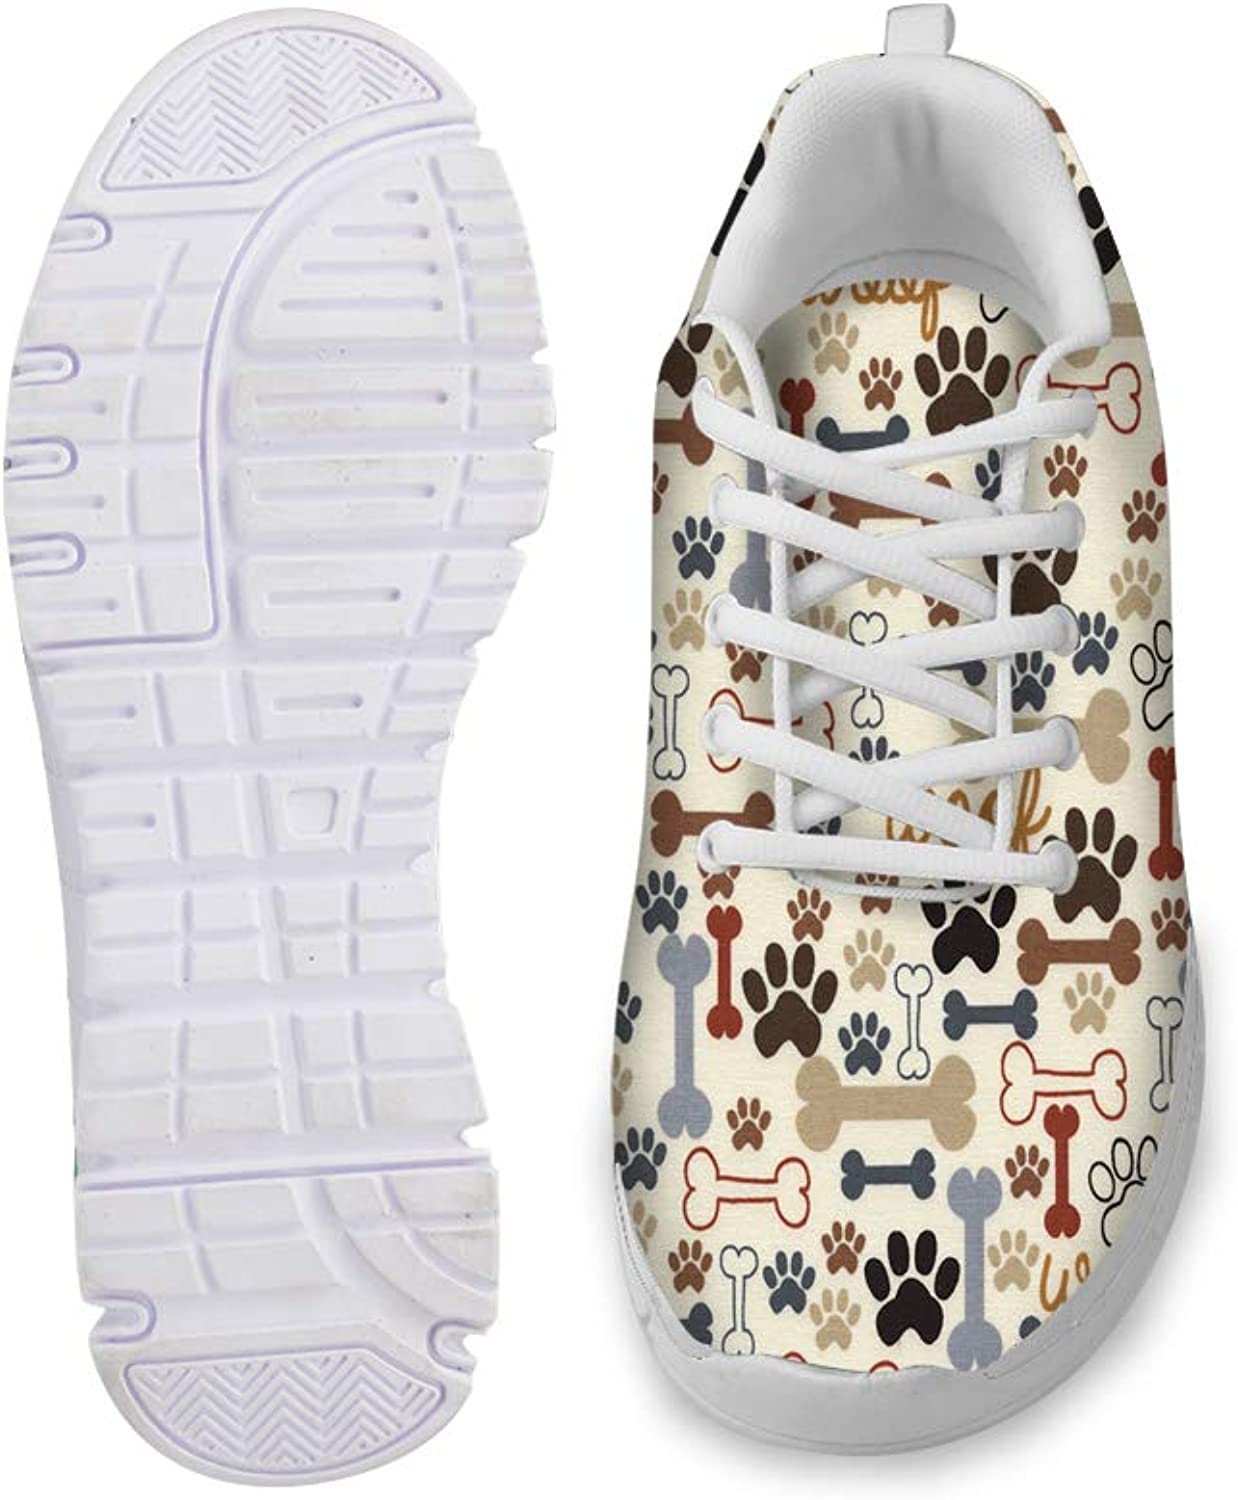 Owaheson Lace-up Sneaker Training shoes Mens Womens Woof Dog Bone Paws